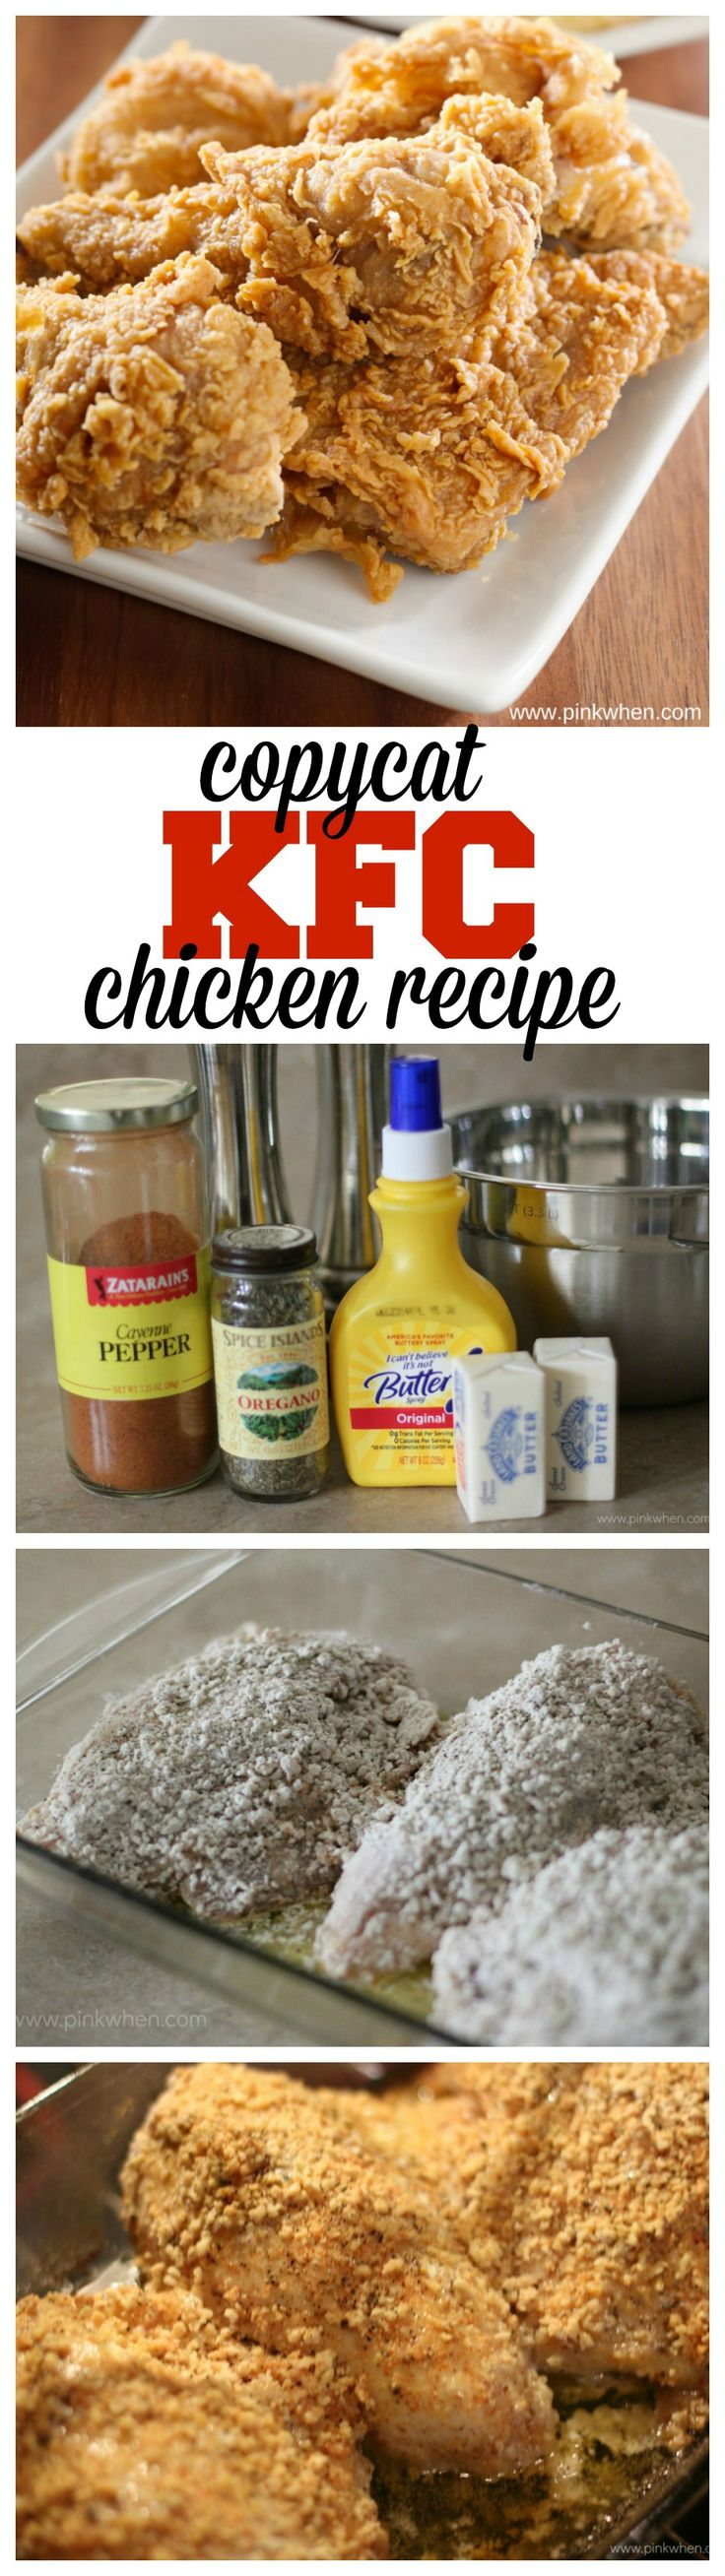 Stay at home and make your own copycat KFC chicken with this awesome recipe.